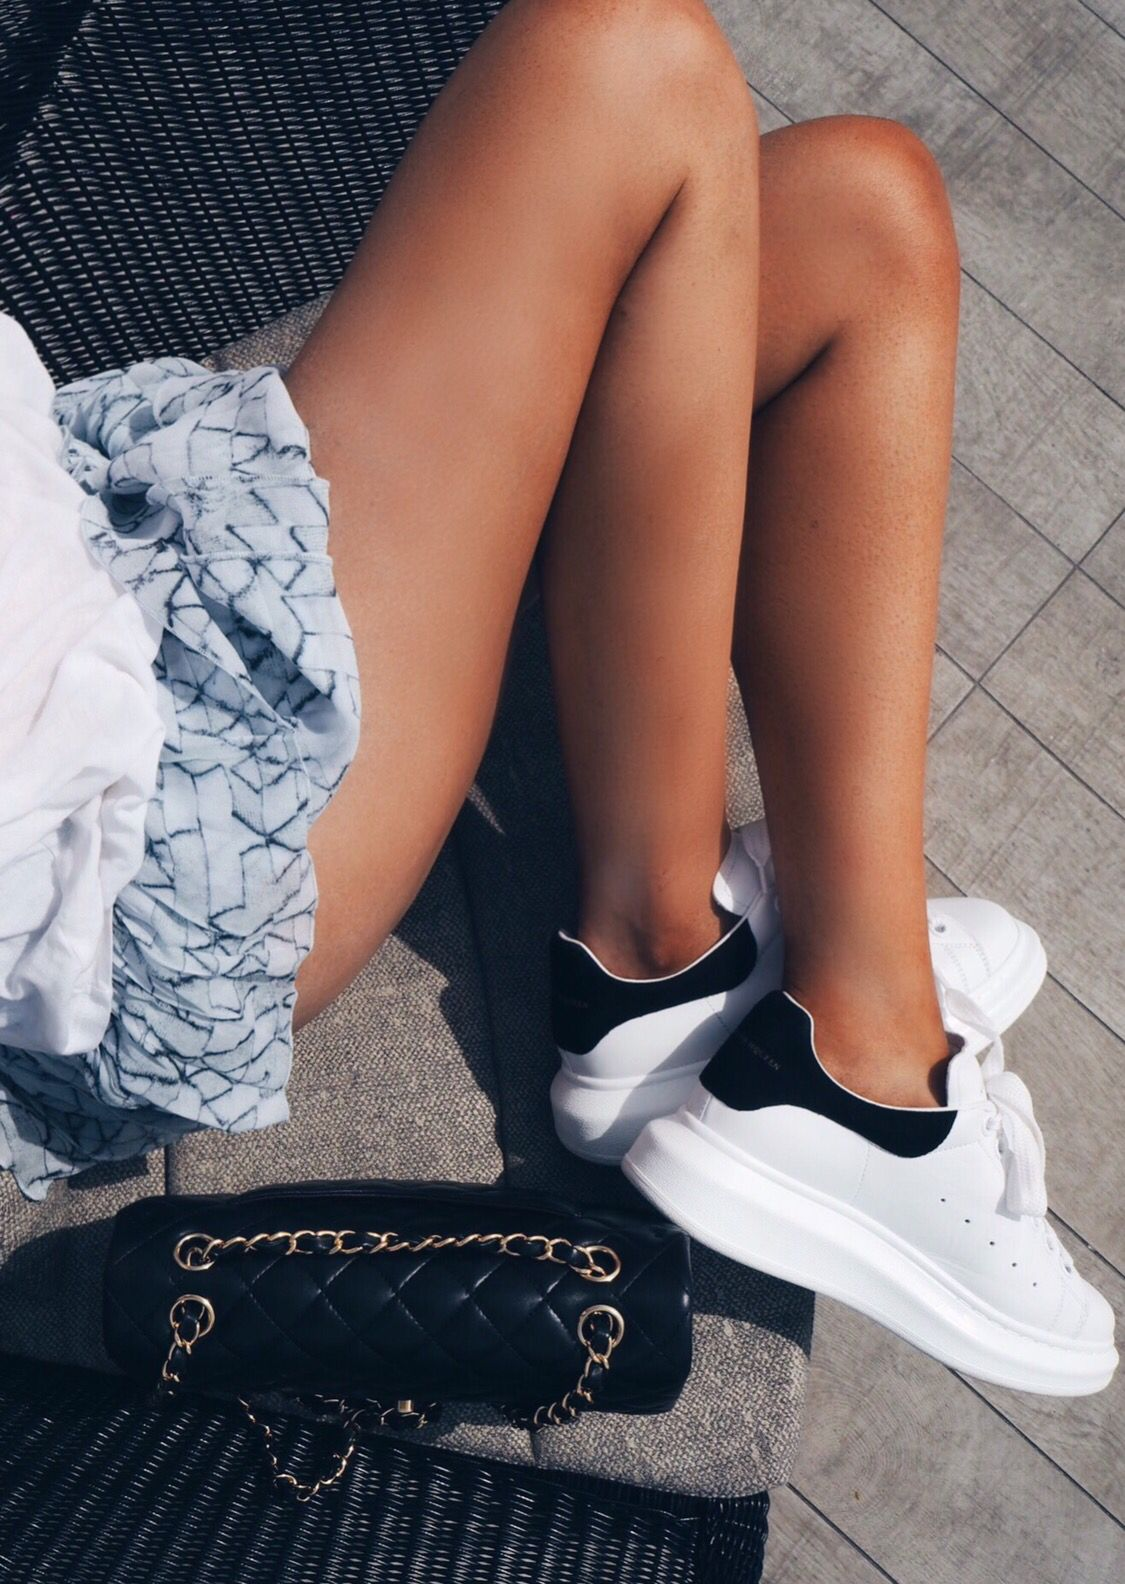 Pinterest: ADC | Sneakers in 2019 | Shoes sneakers, Fashion